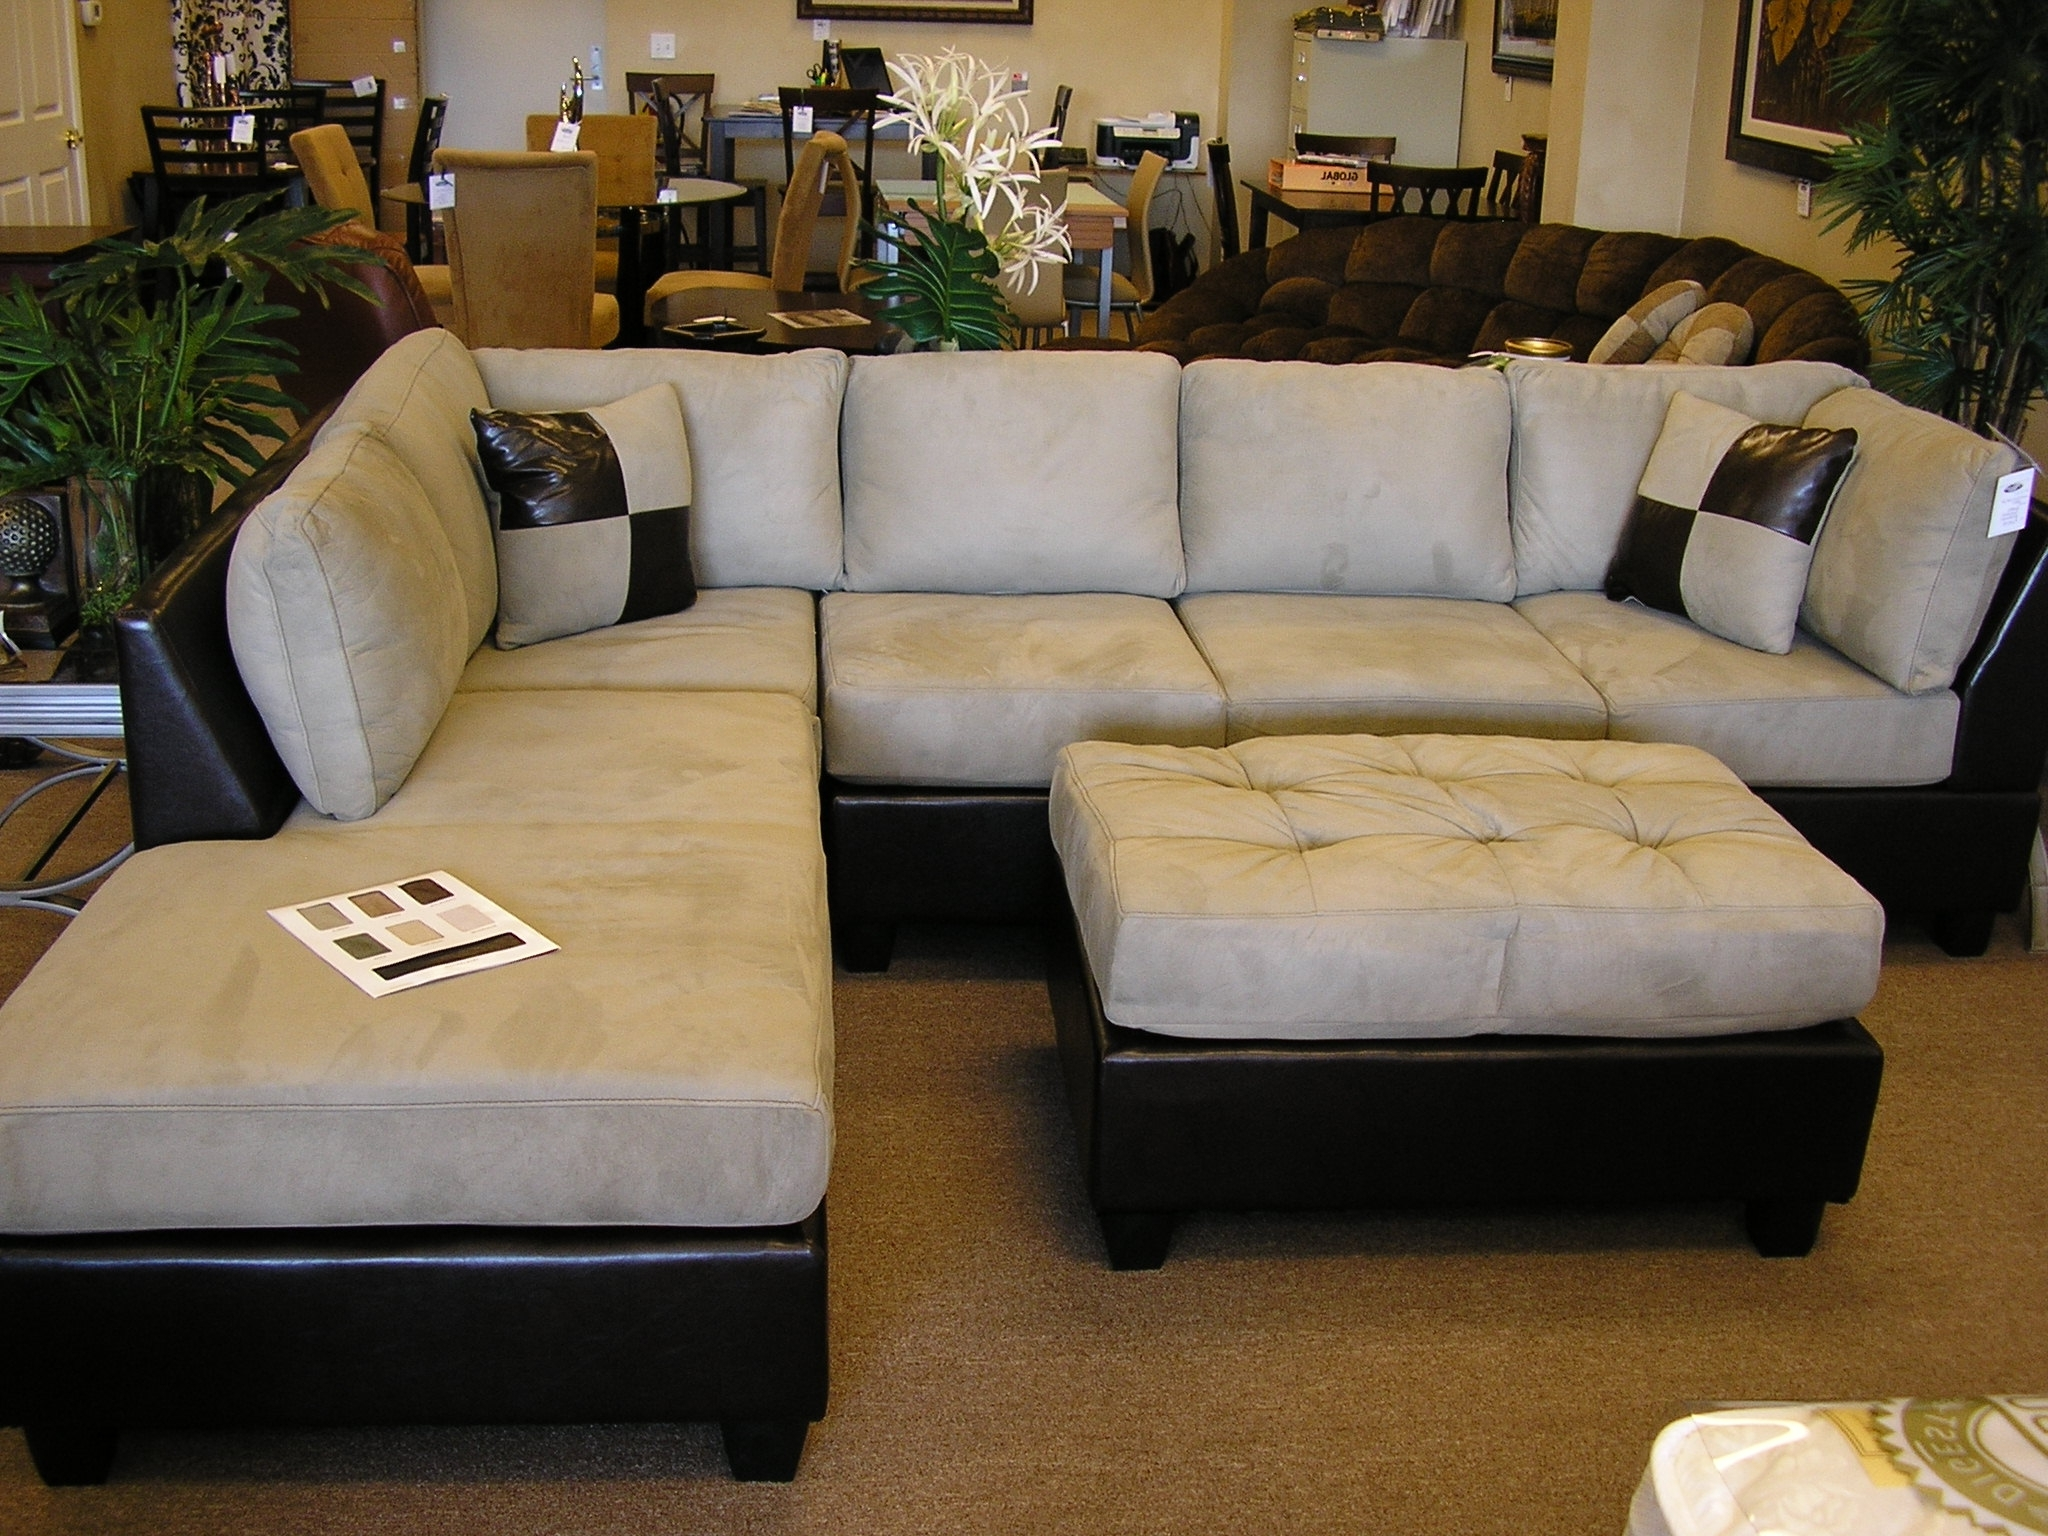 Famous Amazing Sectional Sofa With Chaise Lounge 32 On Sofas And Couches Pertaining To Couches With Chaise Lounge (View 10 of 15)